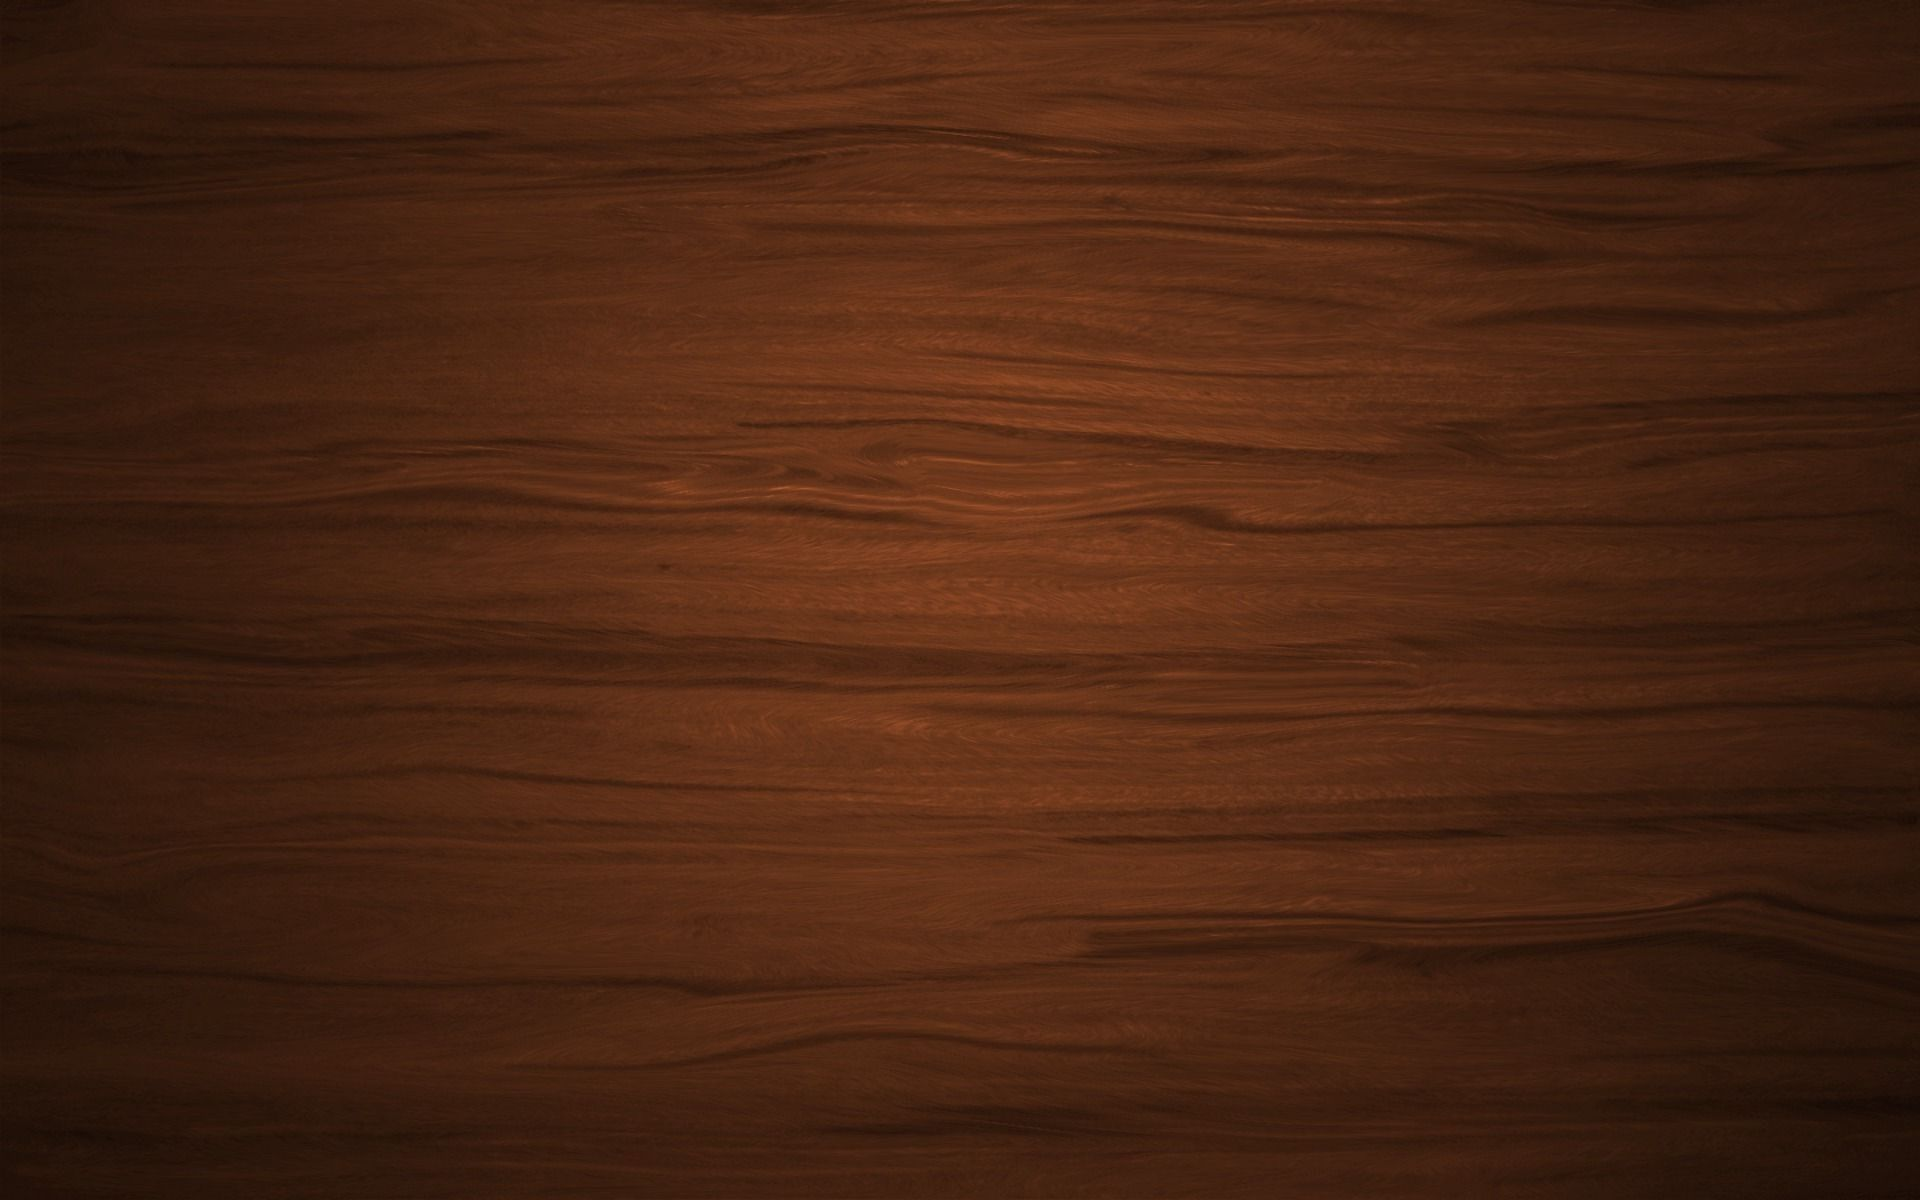 1920x1200 Wood High Resolution Wallpapers Widescreen Wood Table